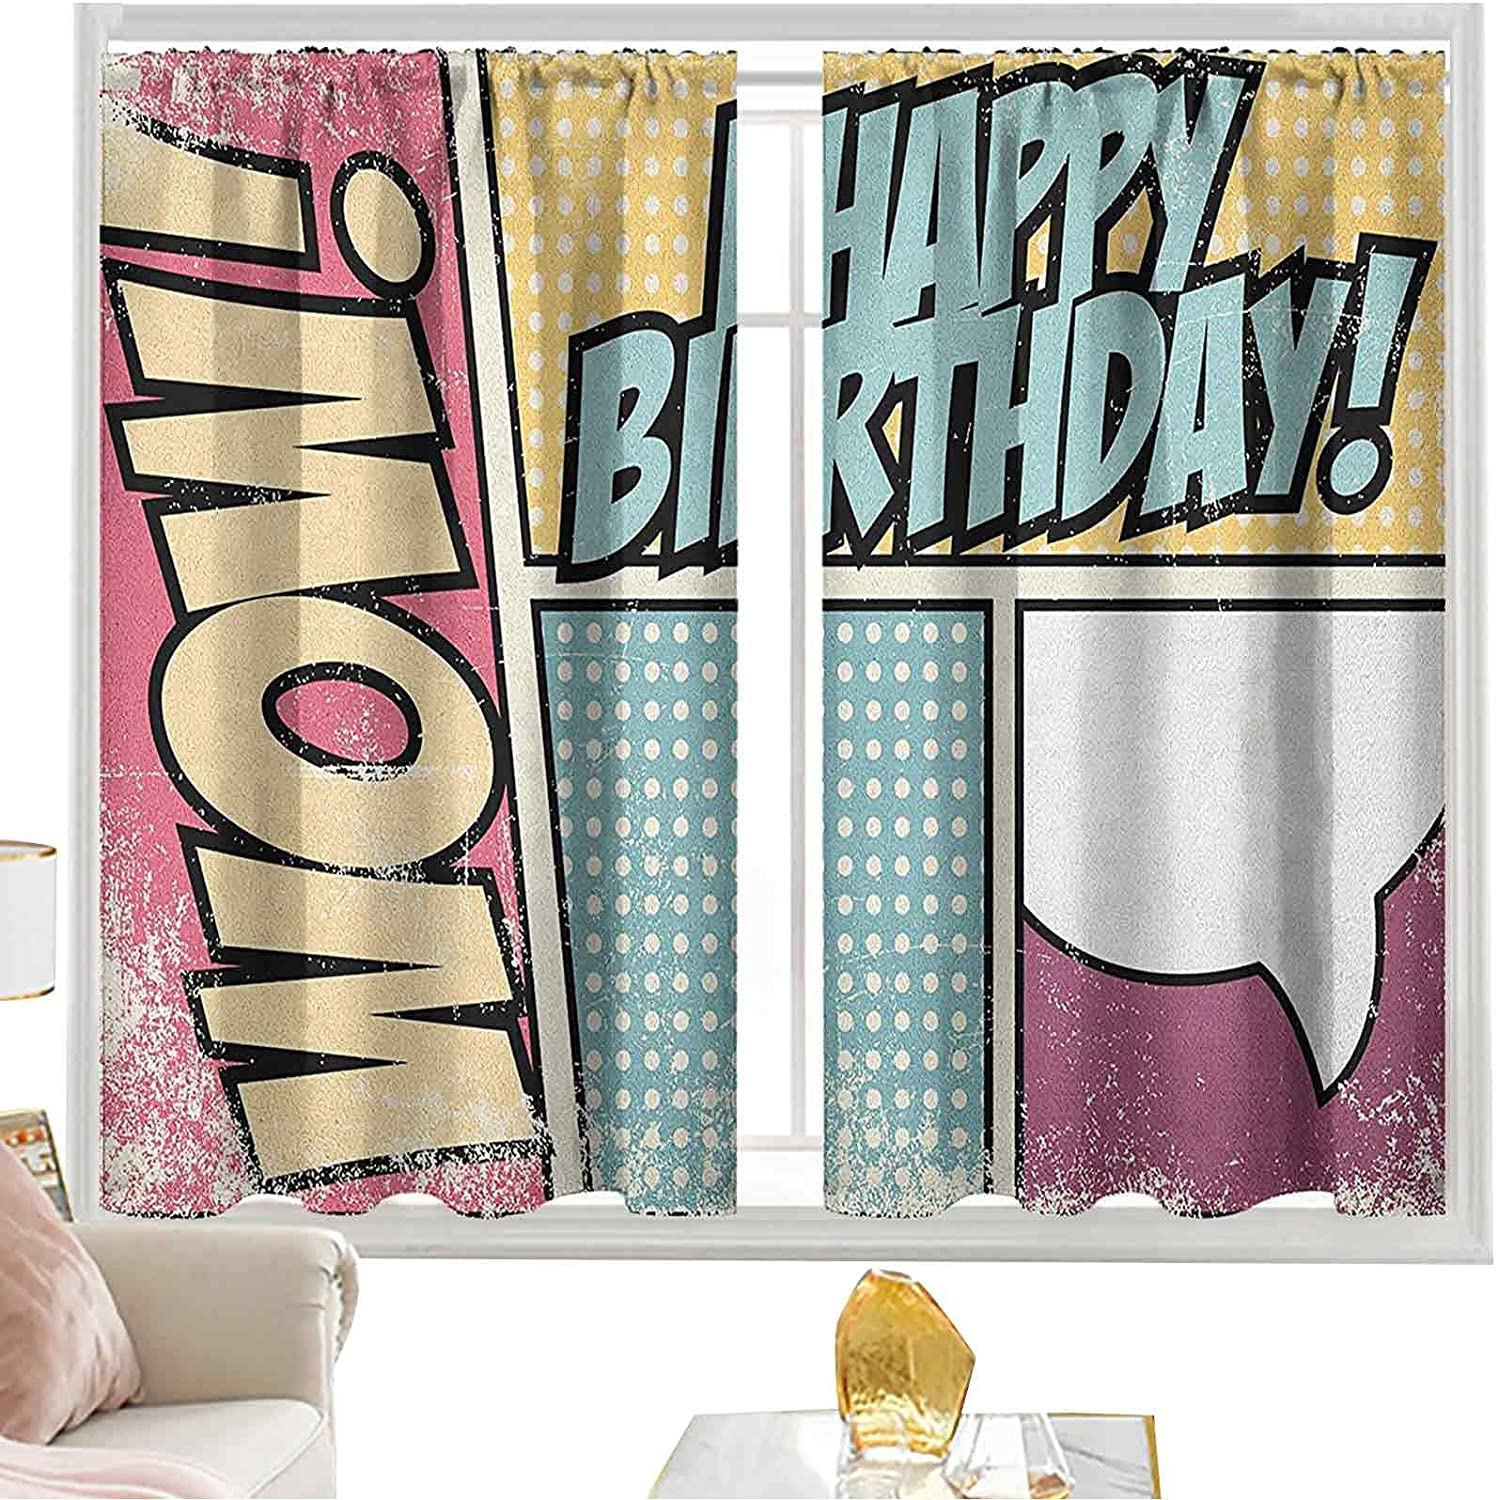 Curtains for Bedroom Comic Book Style Ene Store Pop Effect Free Shipping Cheap Bargain Gift Art Grunge